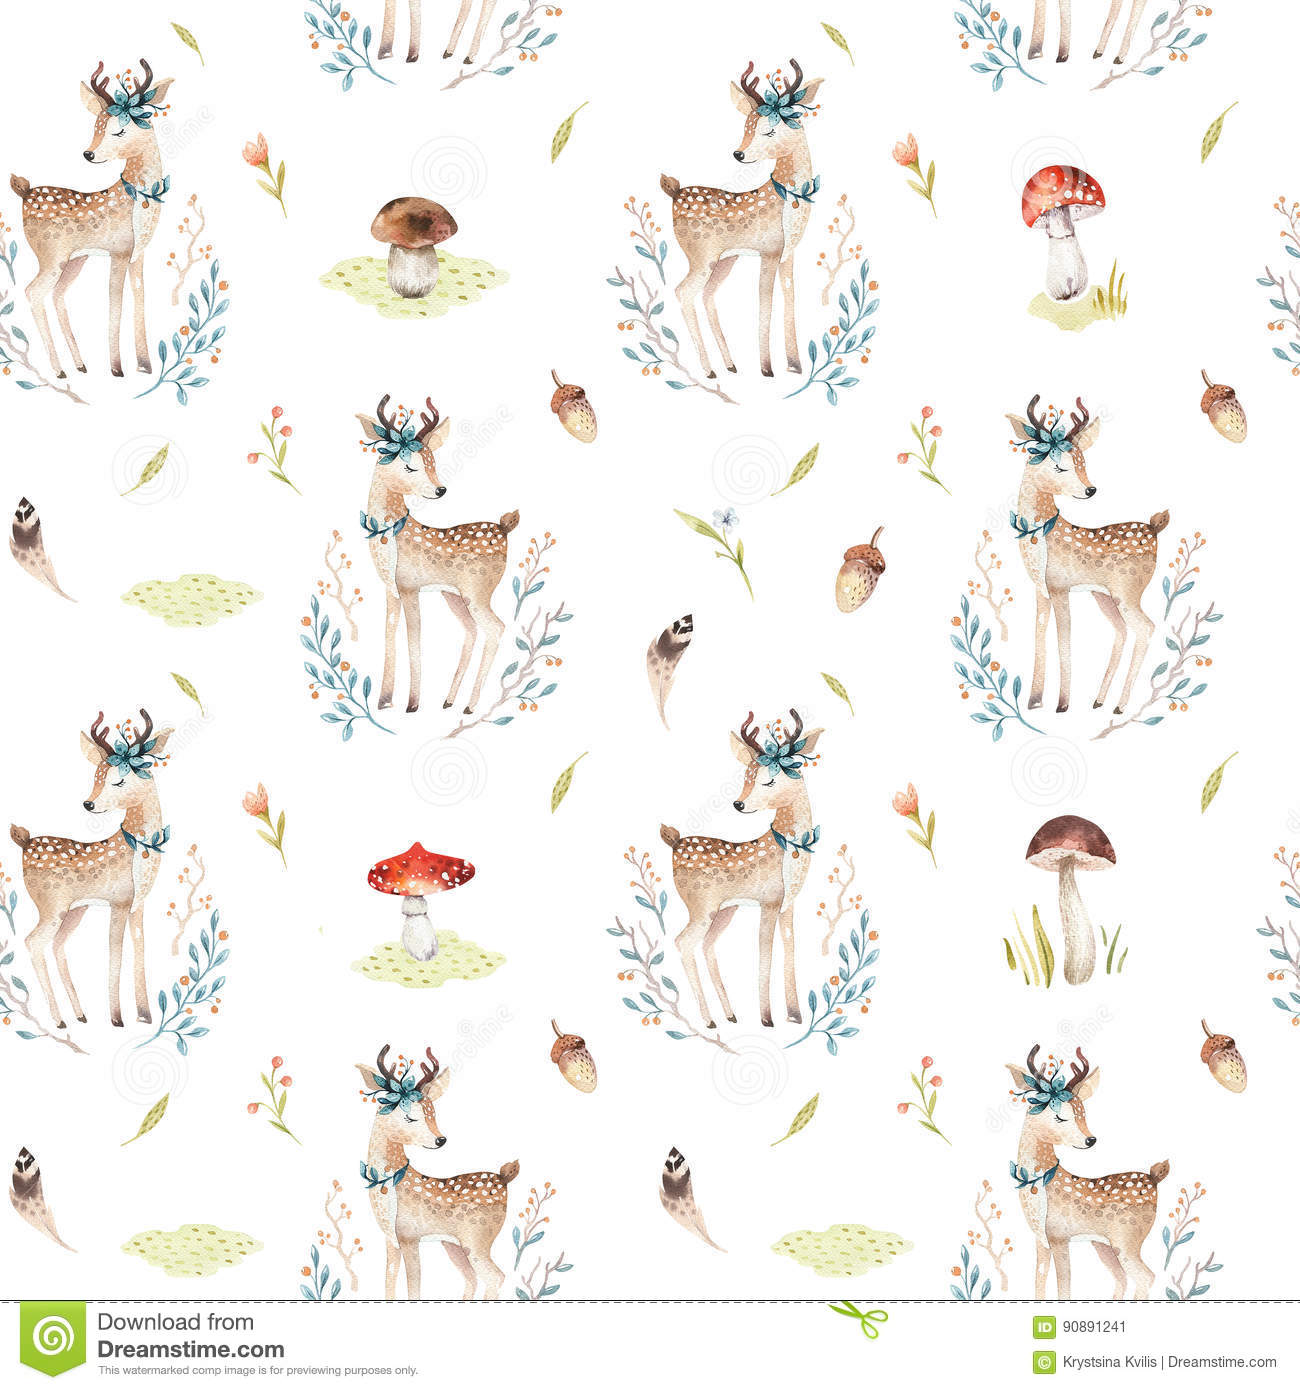 Cute Baby Deer Animal Seamless Pattern For Kindergarten Nursery Isolated Illustration For